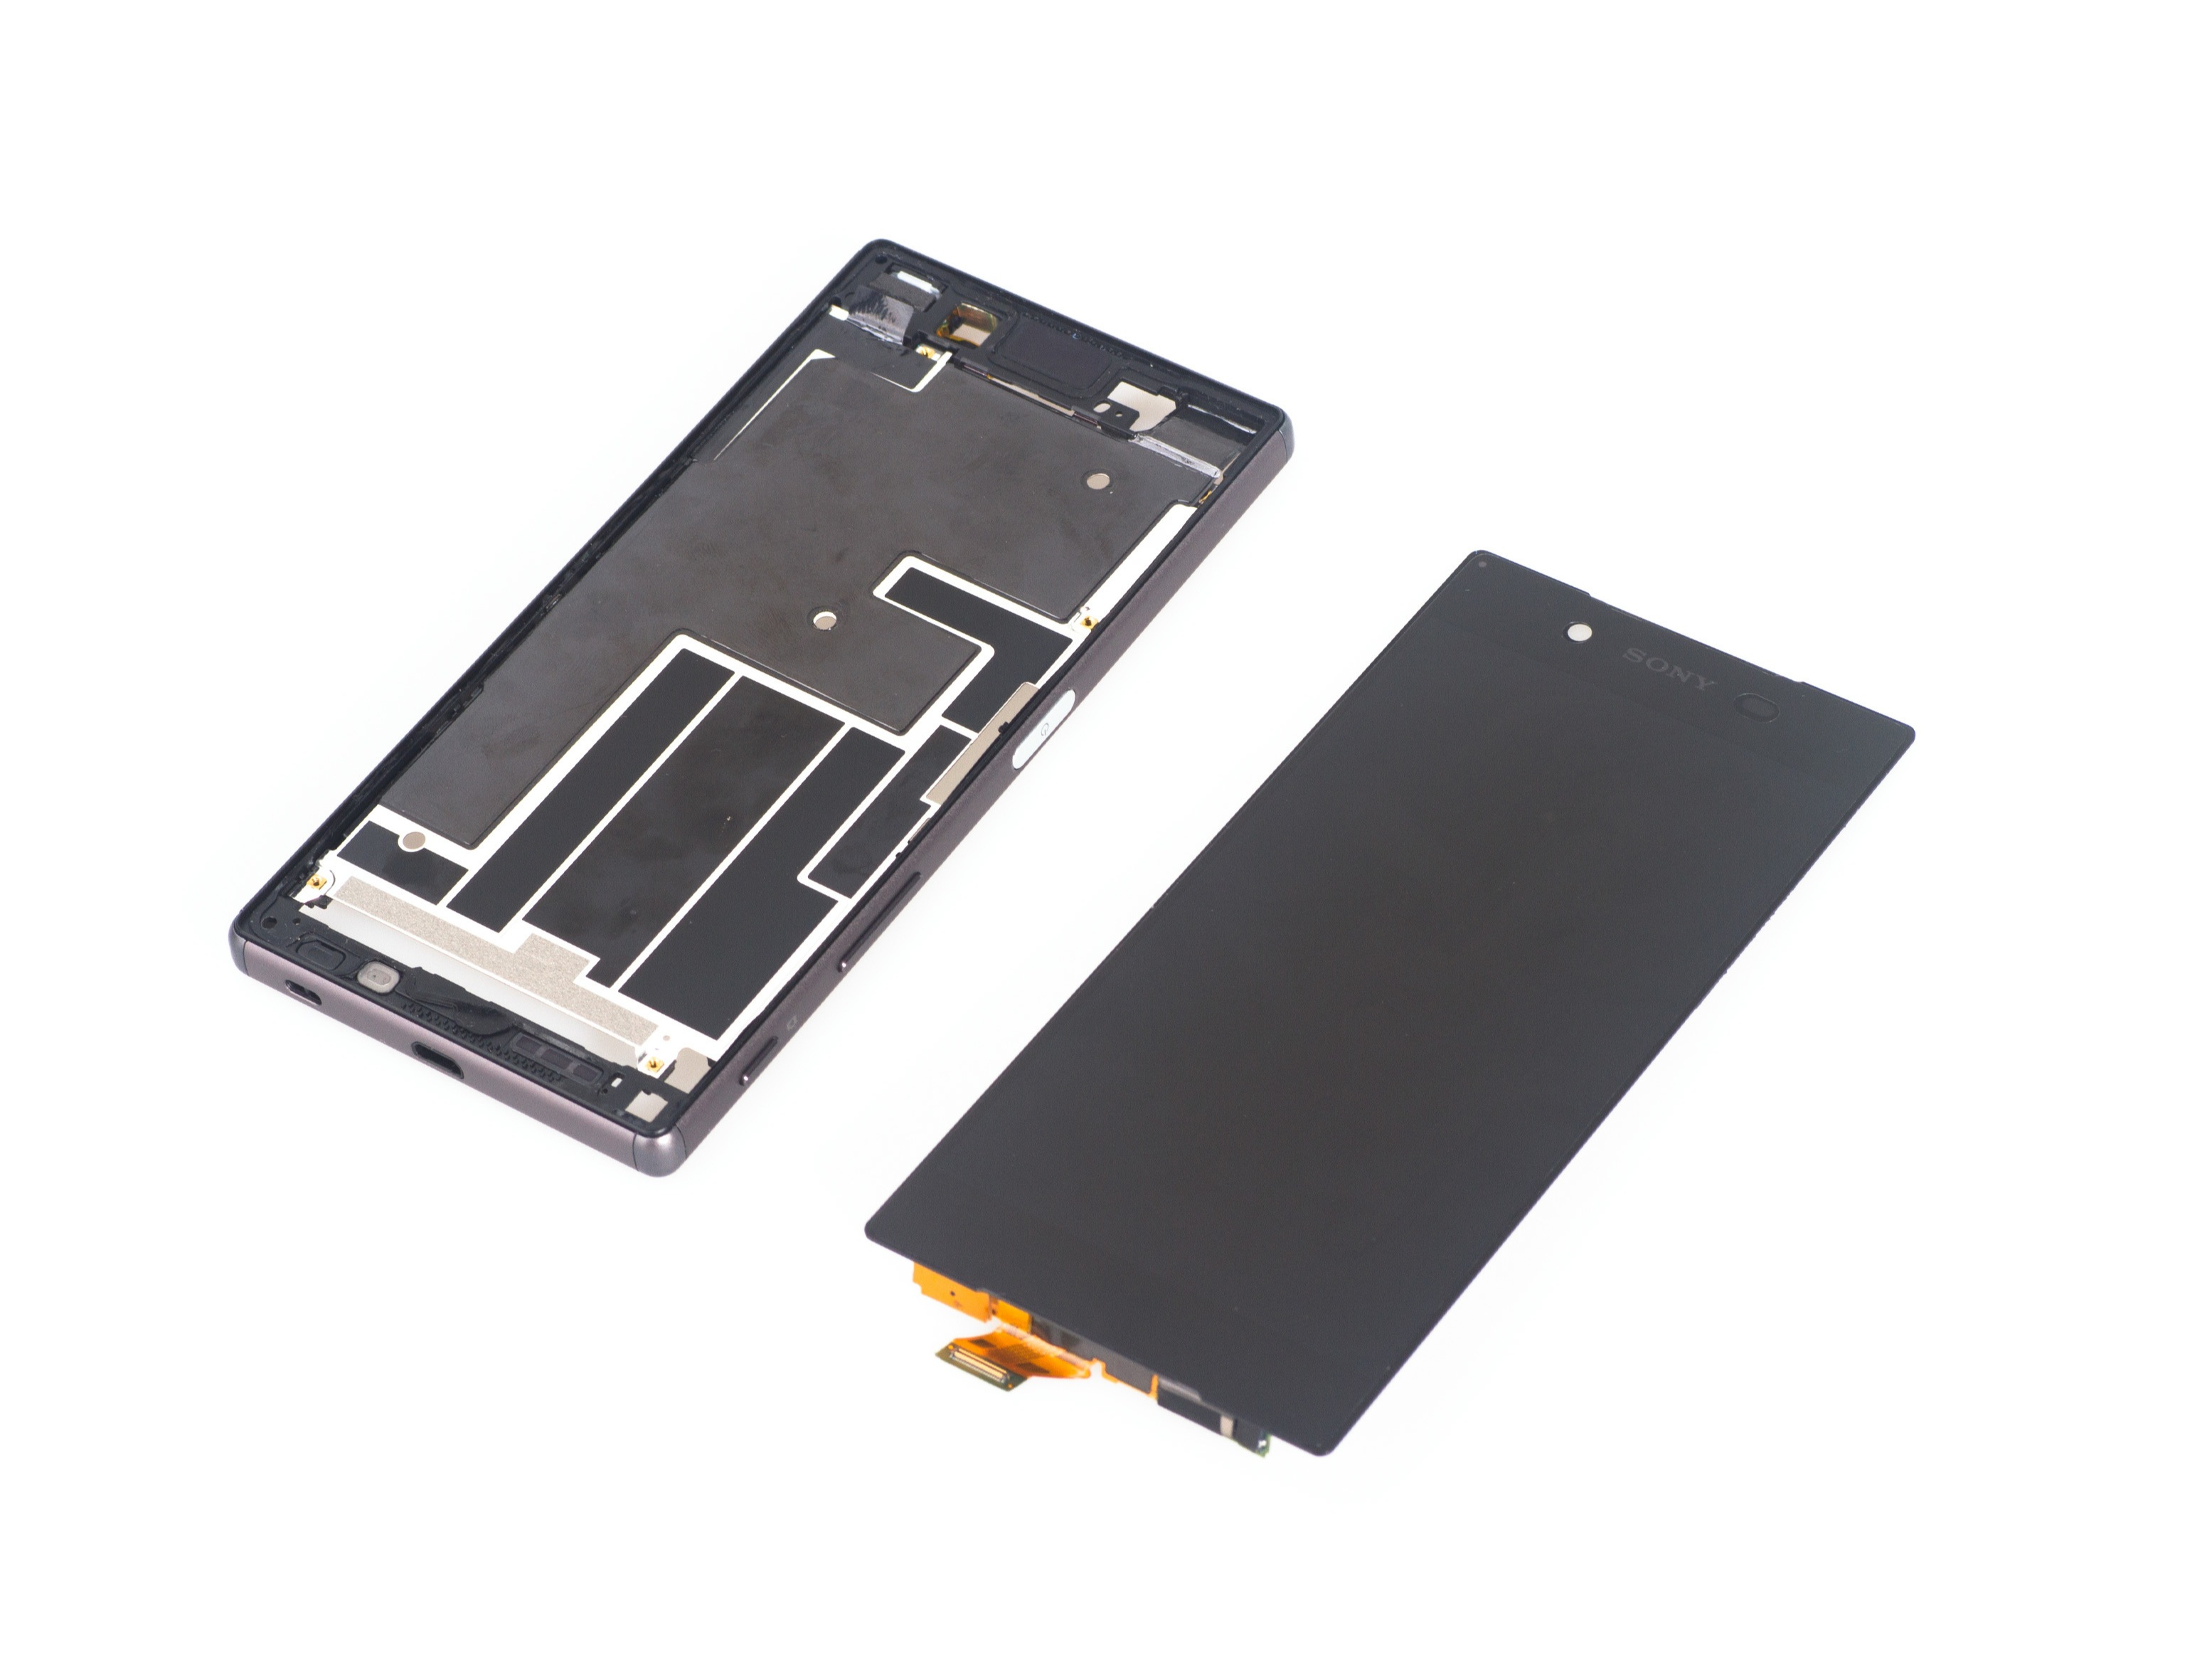 Sony Xperia Z5 LCD Screen Replacement